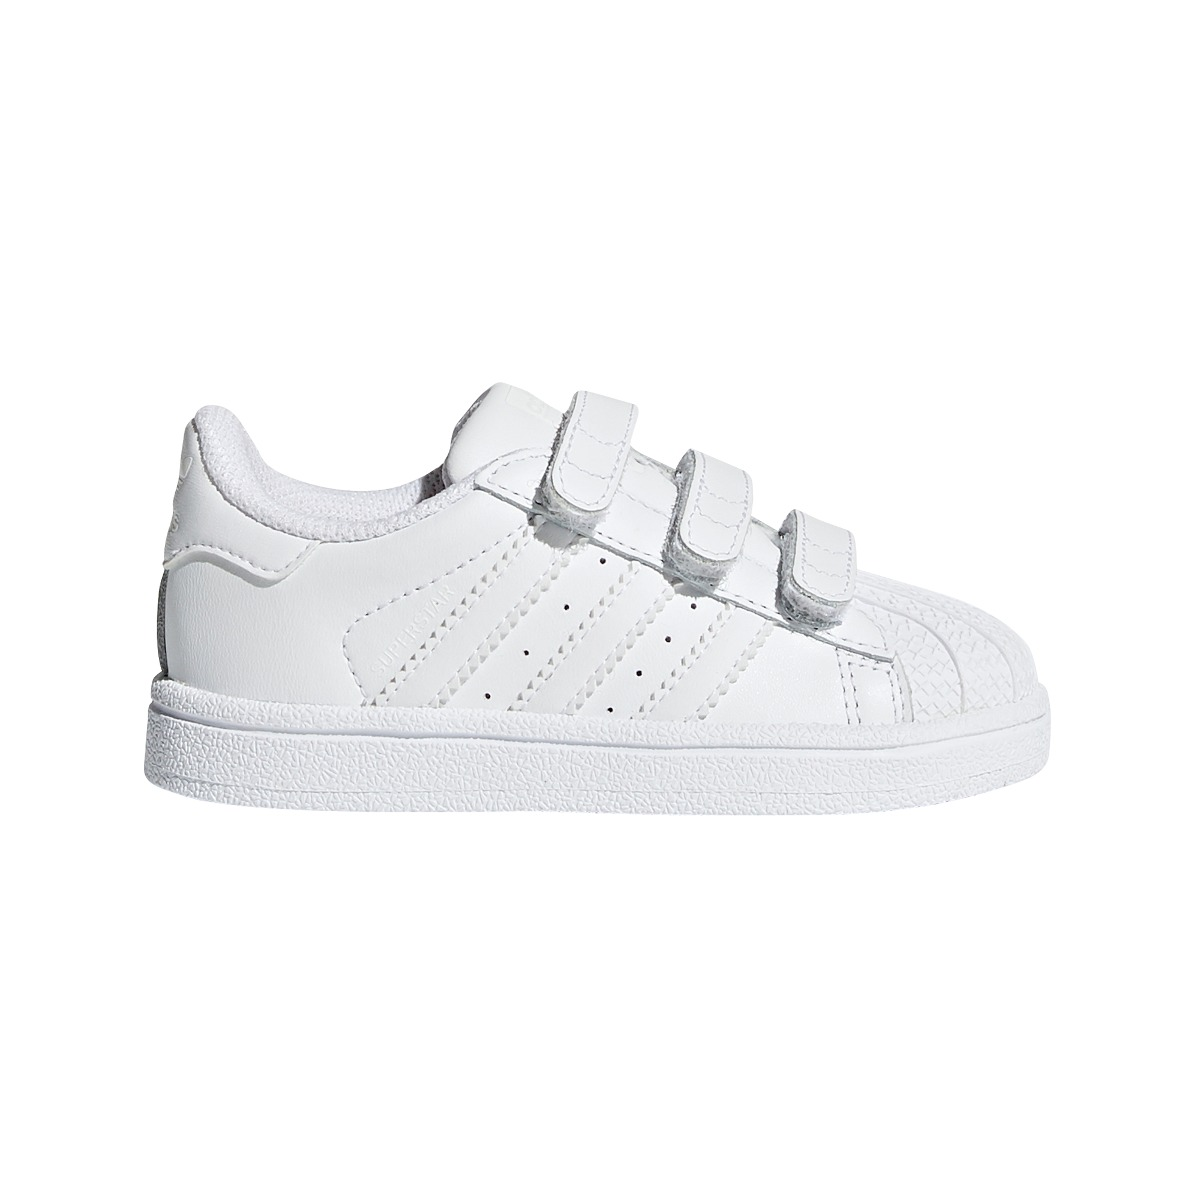 3746072f0 zapatillas adidas superstar bebes- originals. Cargando zoom.